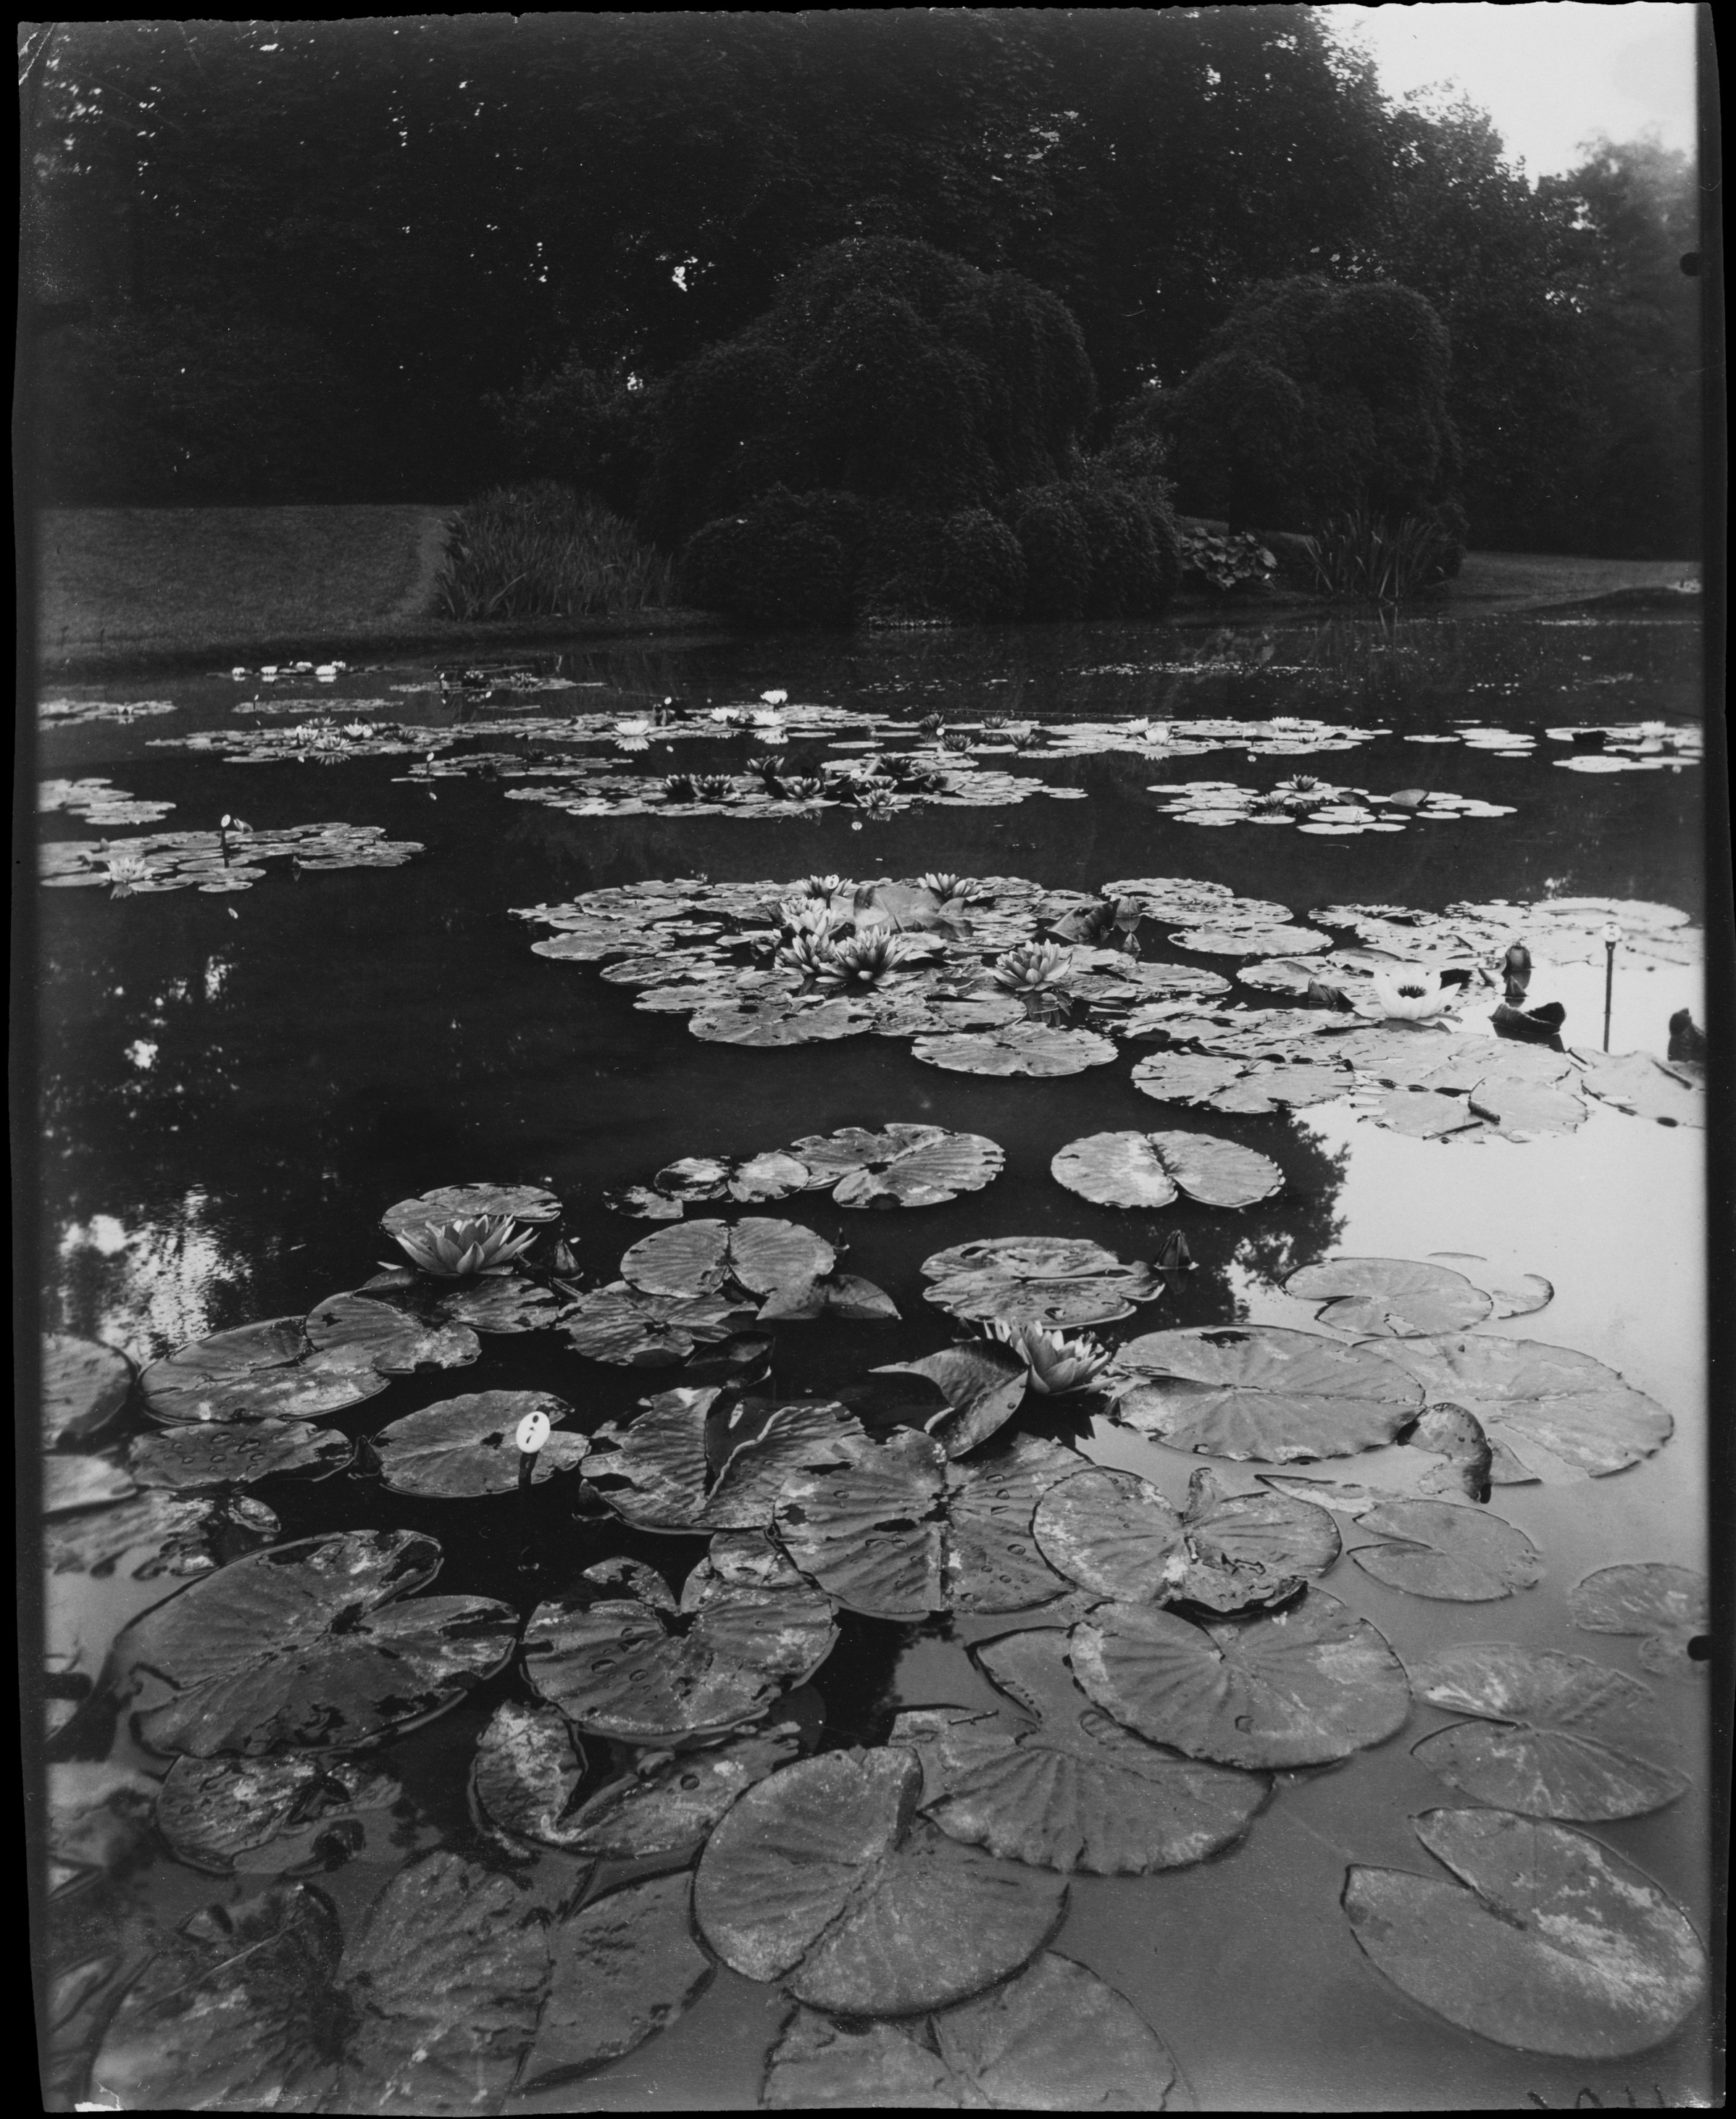 Eugène Atget, Water Lilies, before 1911.